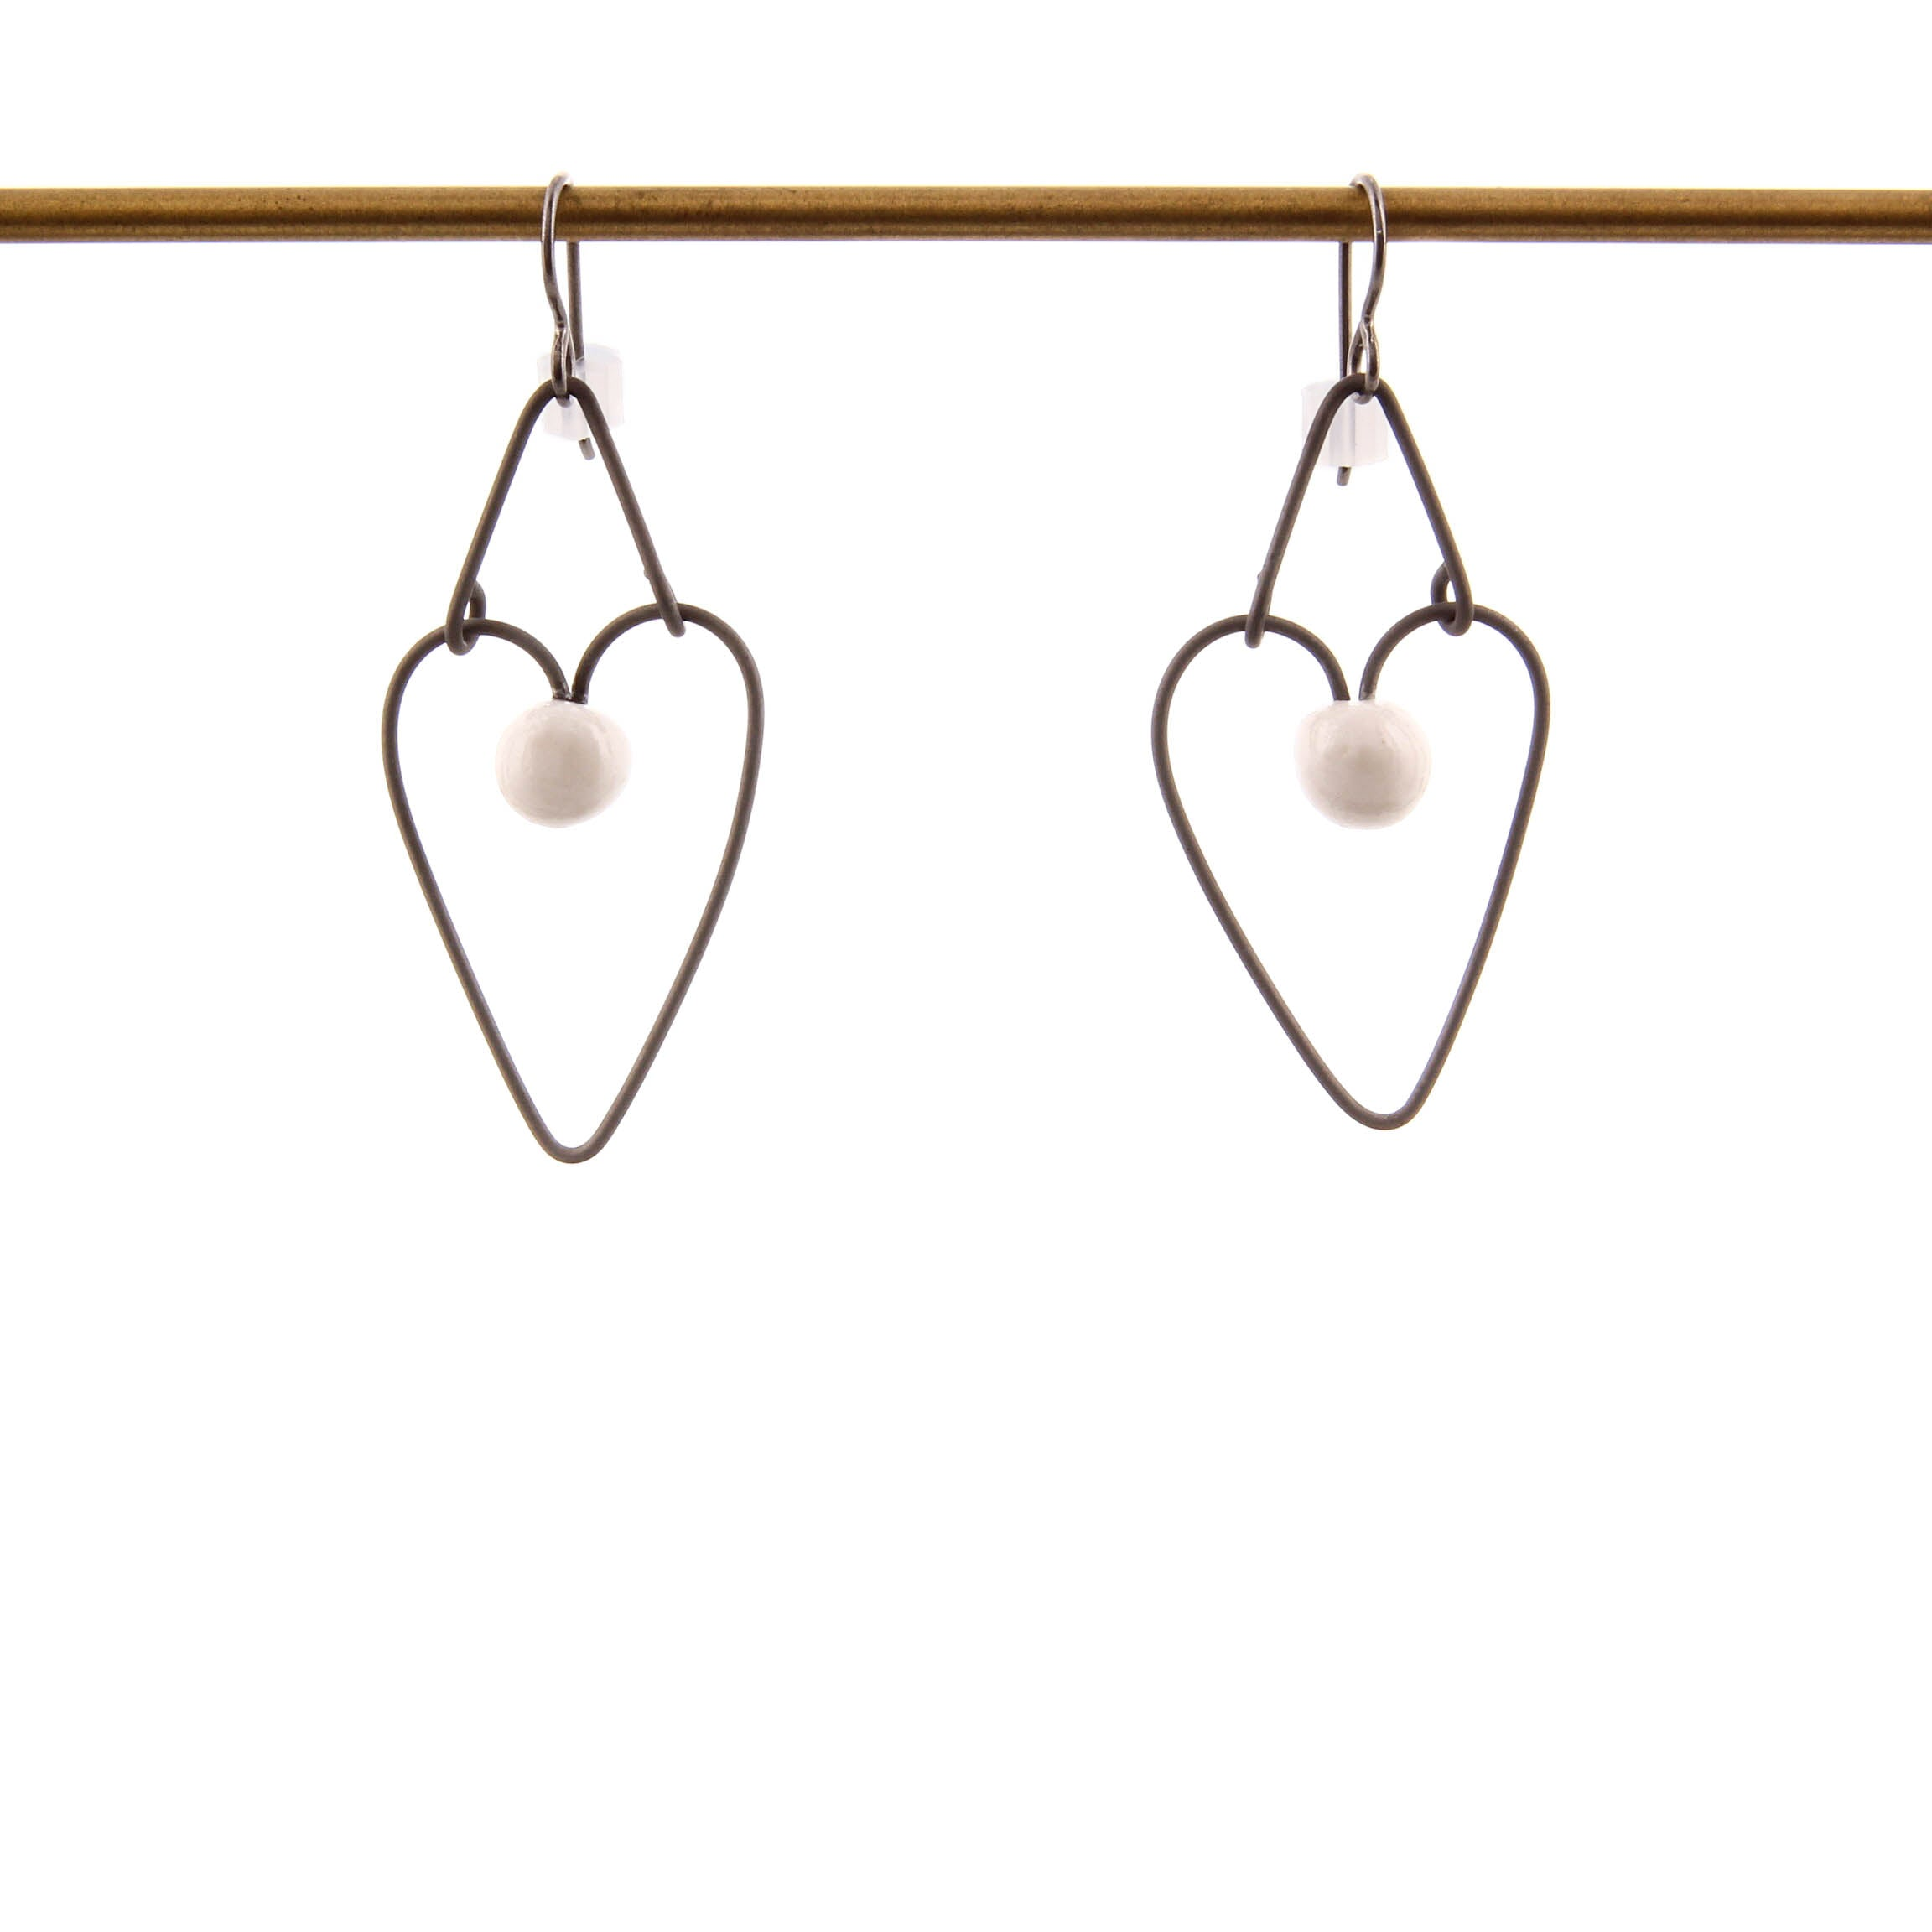 Jennifer Allen, Ceramic and Metal Heart Shaped Earrings